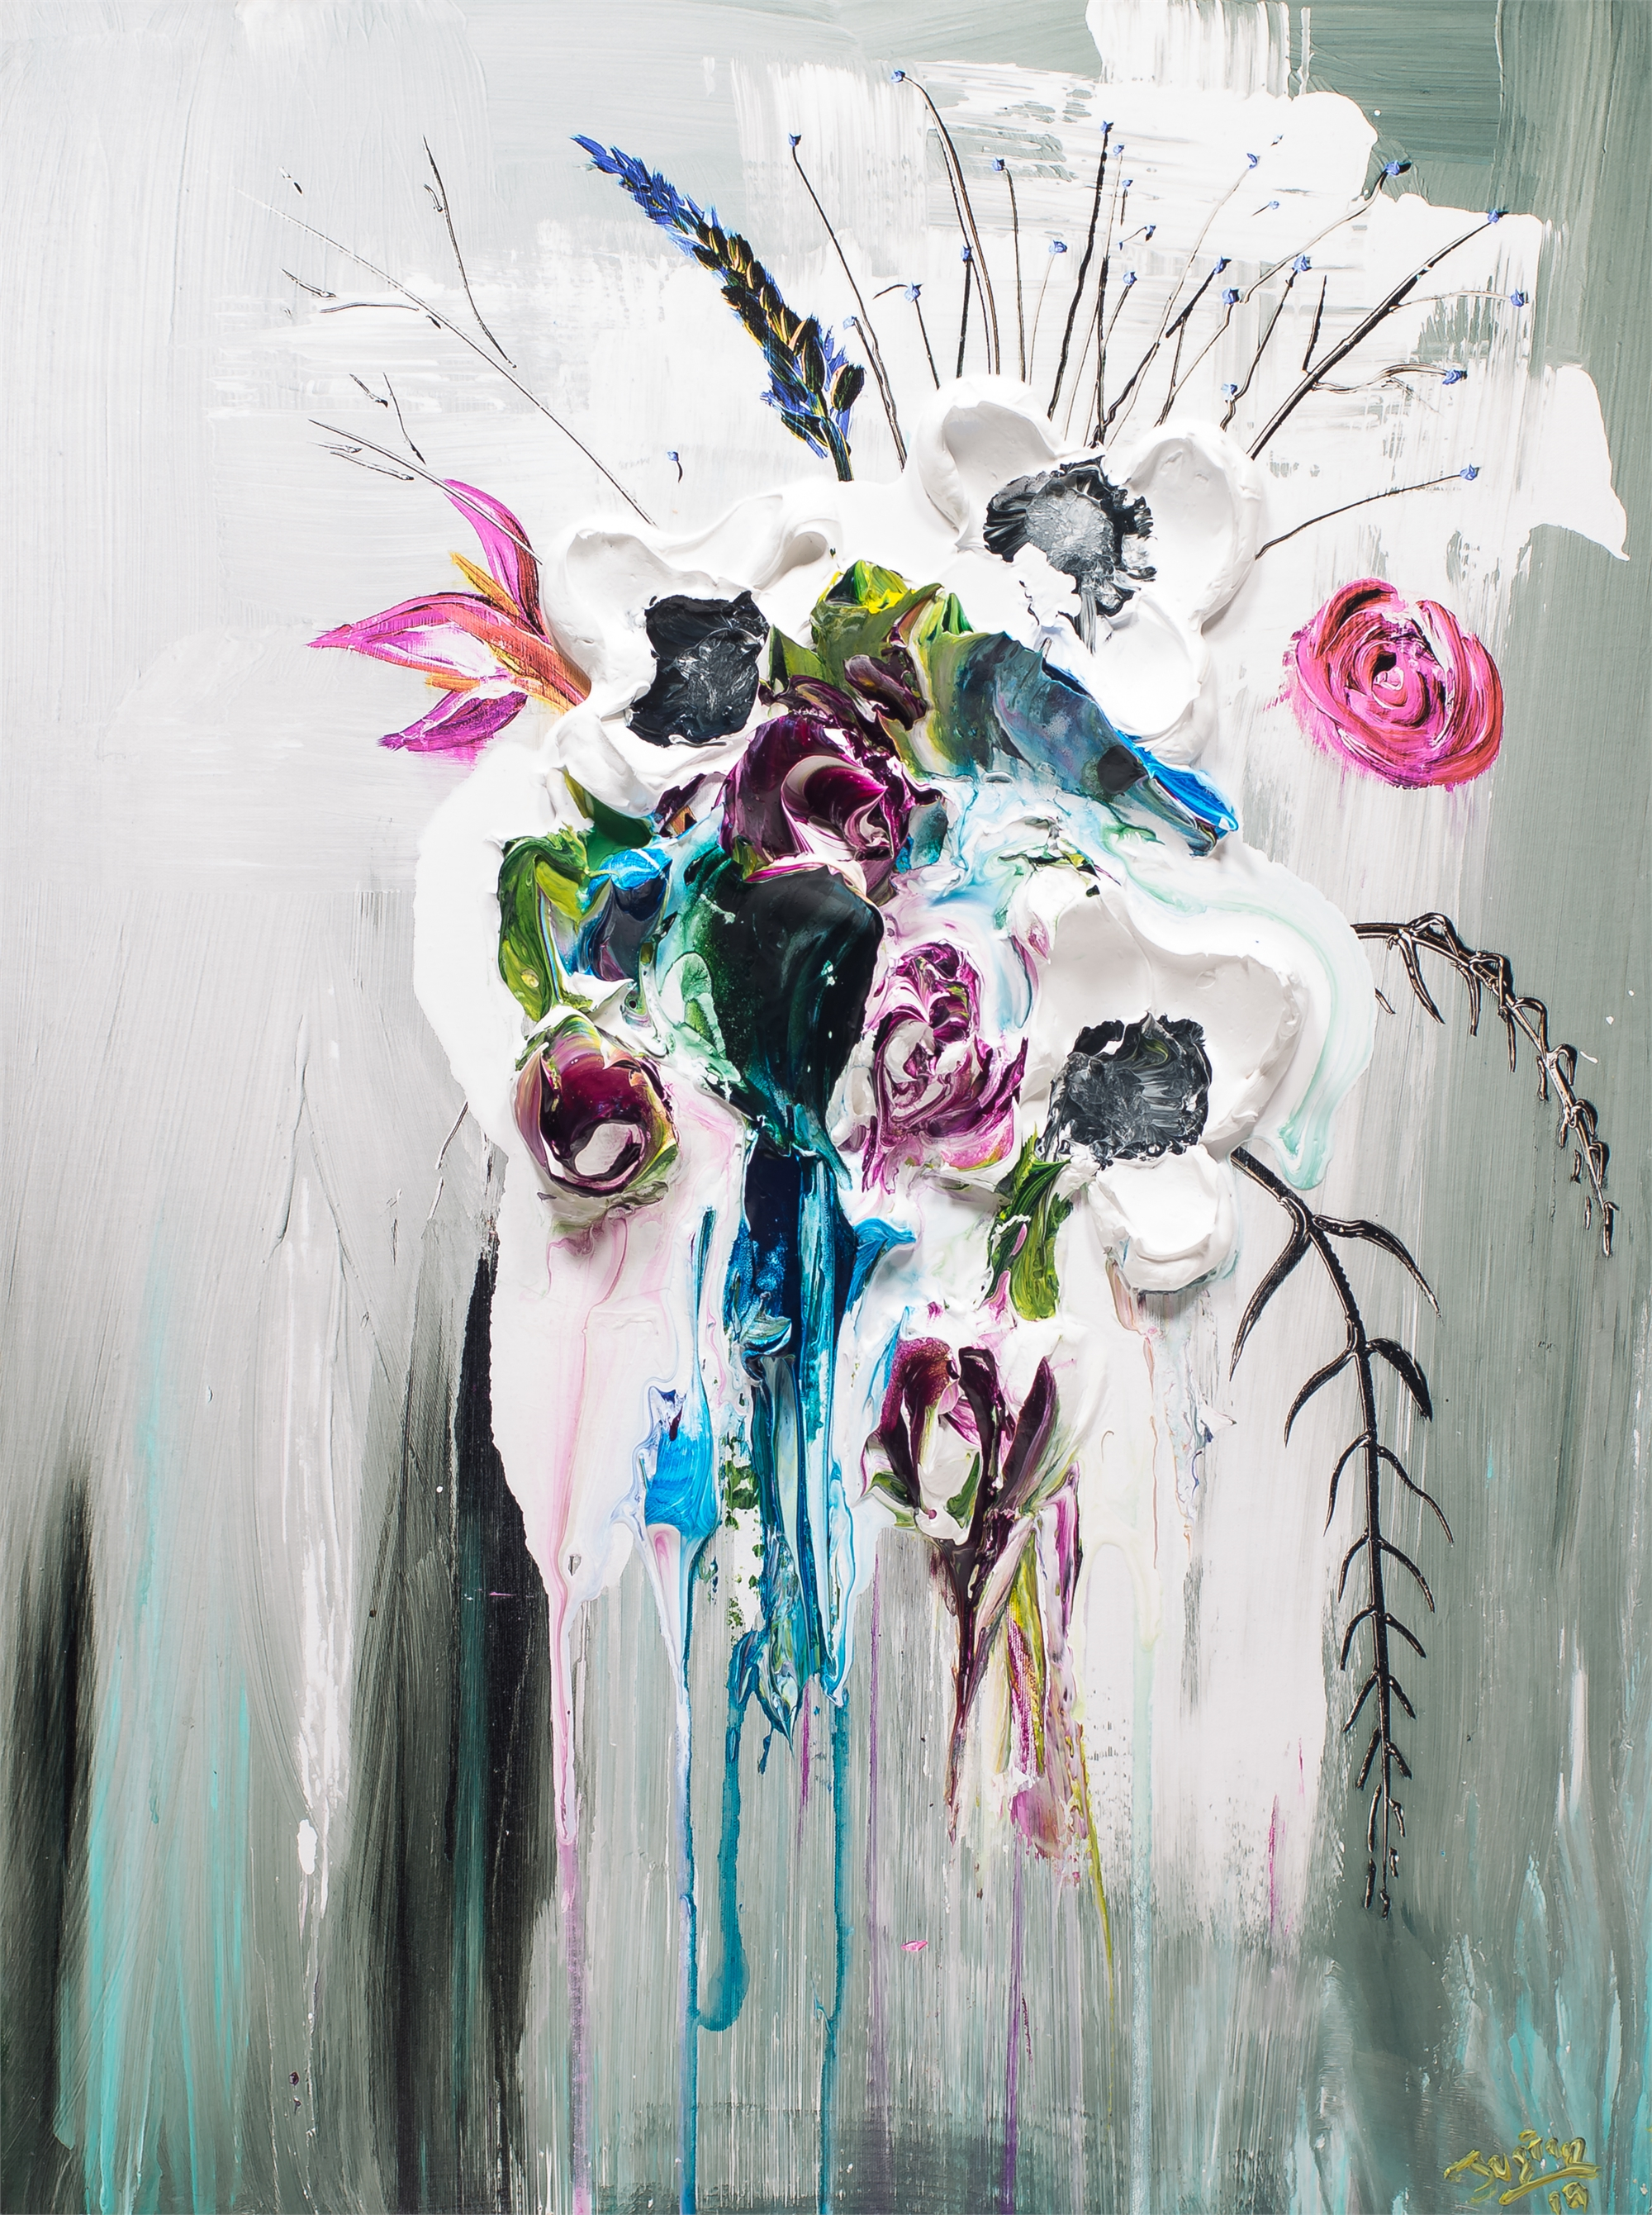 ABSTRACT FLORAL BOUQUET HPAE 7/50 by JUSTIN GAFFREY